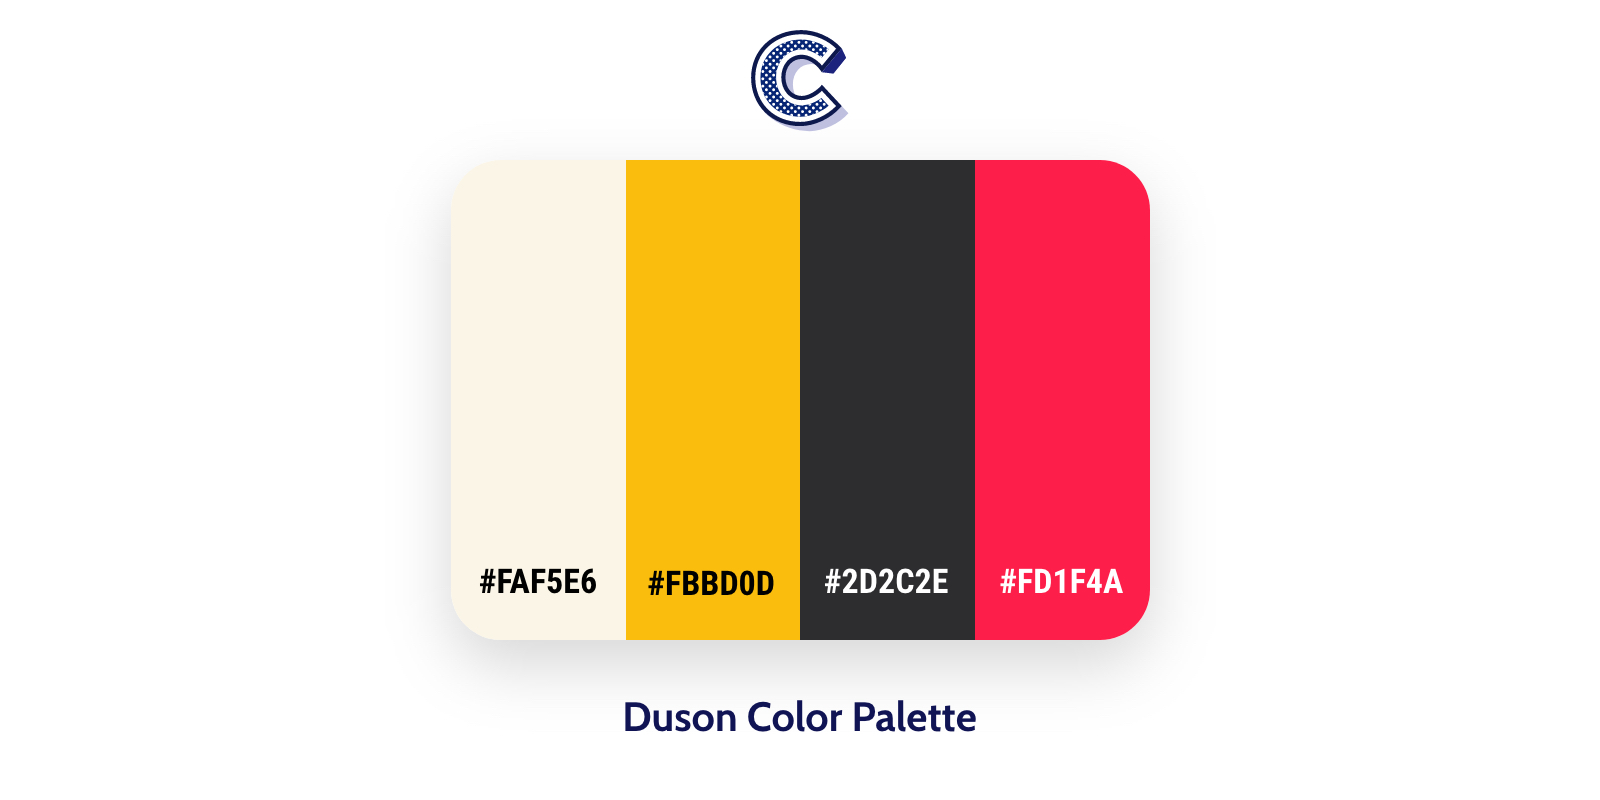 the featured image of duson color palette